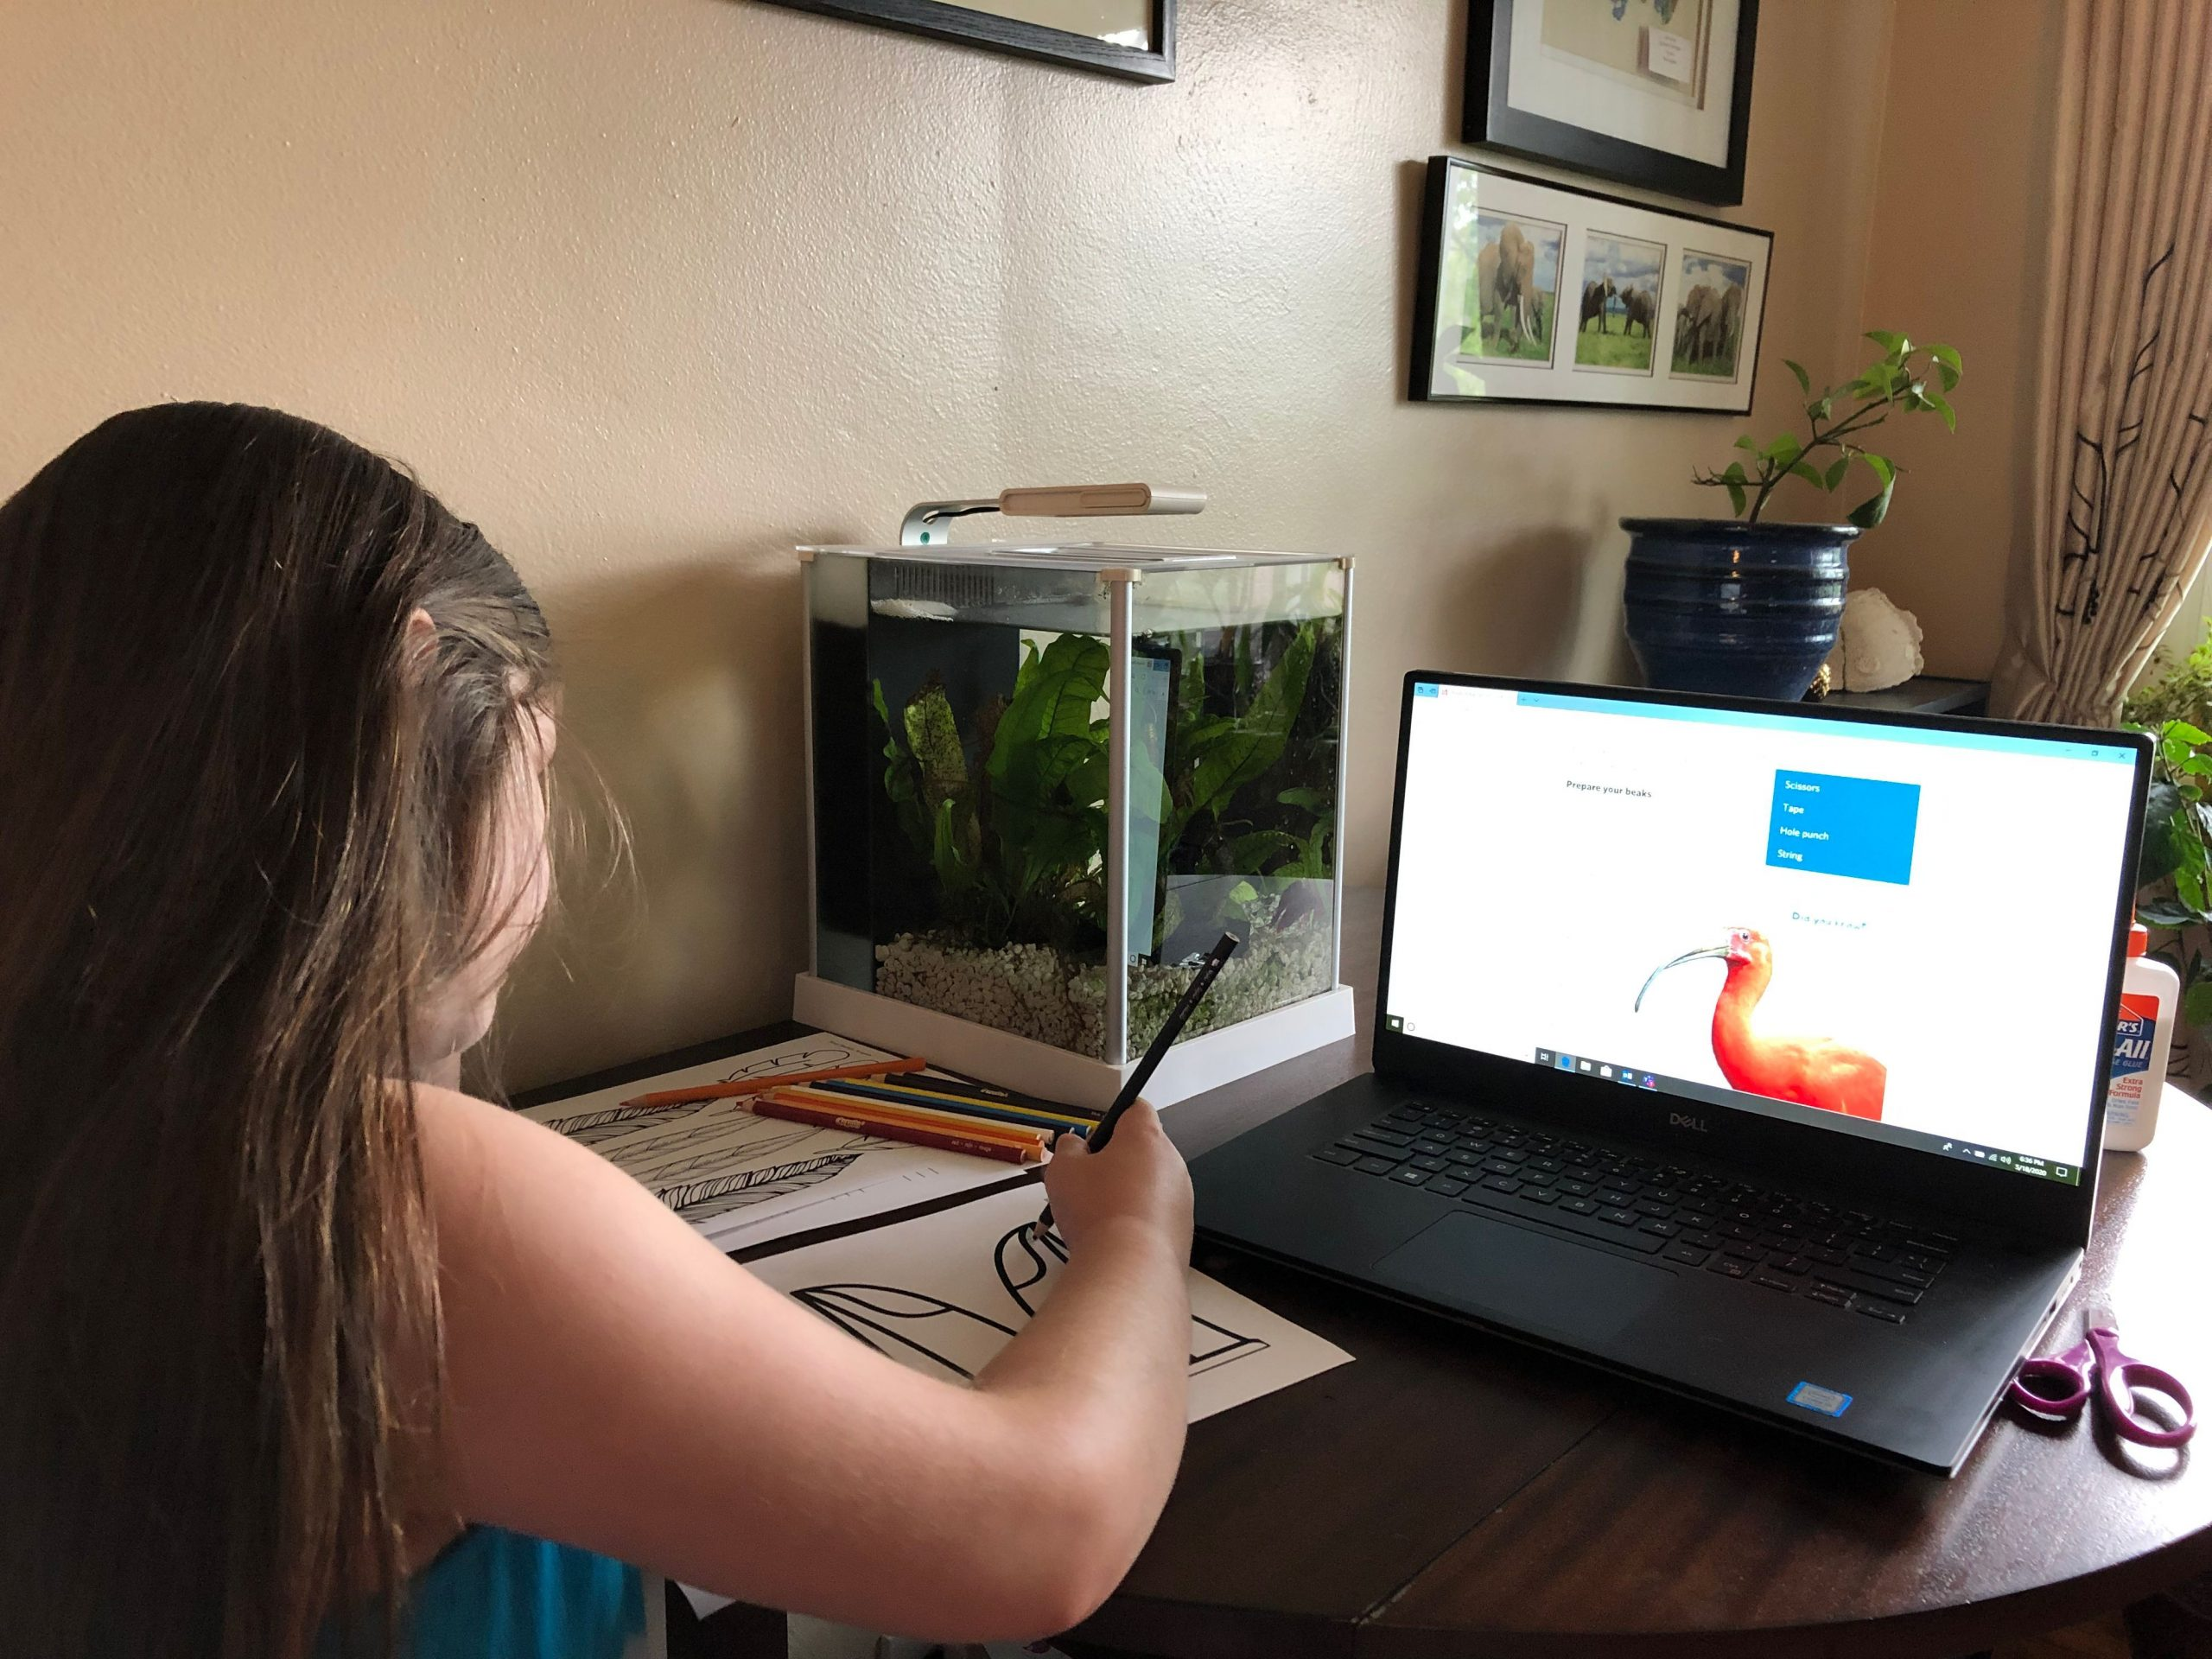 Girl doing an activity in front of a computer with a bird on the screen